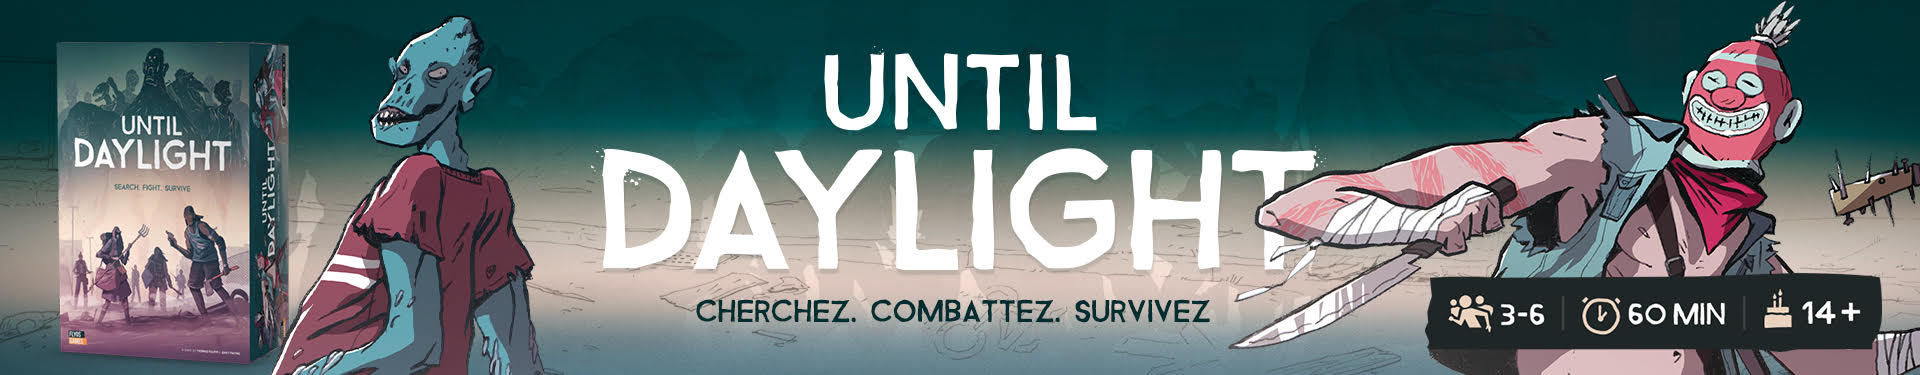 Until Daylight